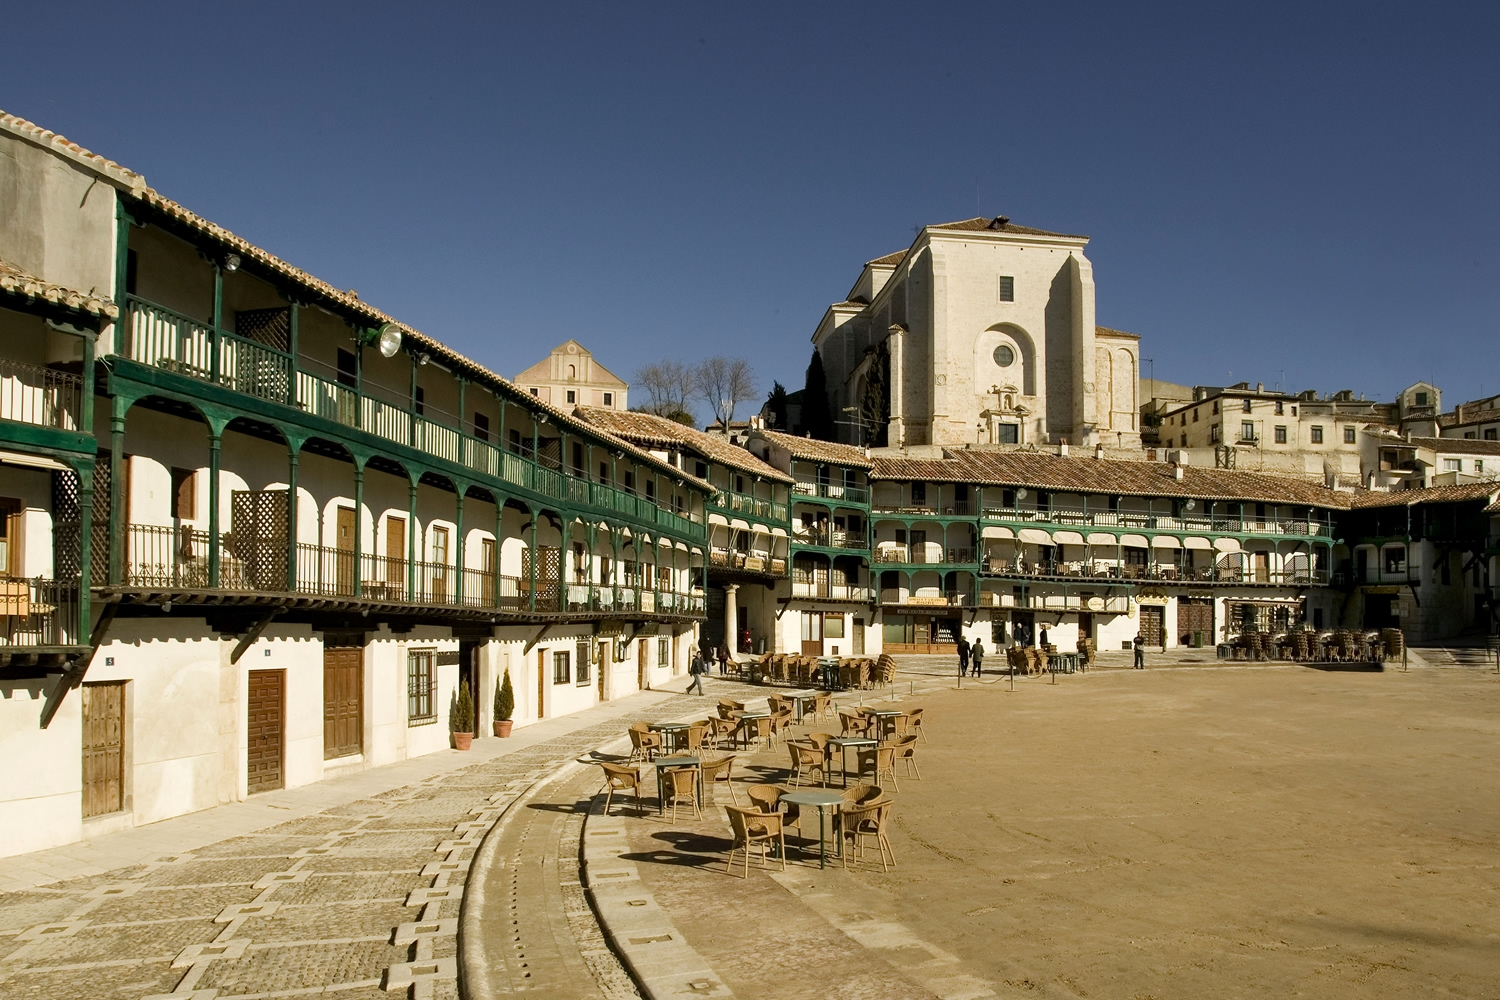 Turismo Madrid. Chinchón Plaza - Comunidad de Madrid